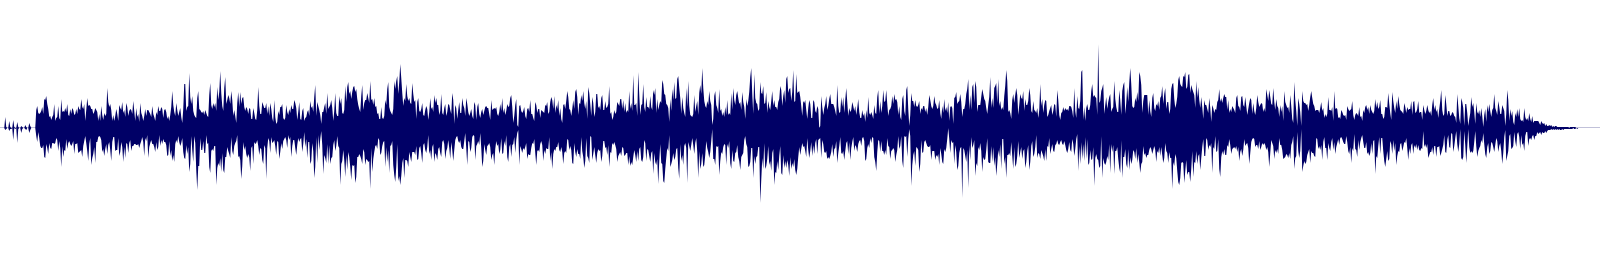 waveform of track #148648